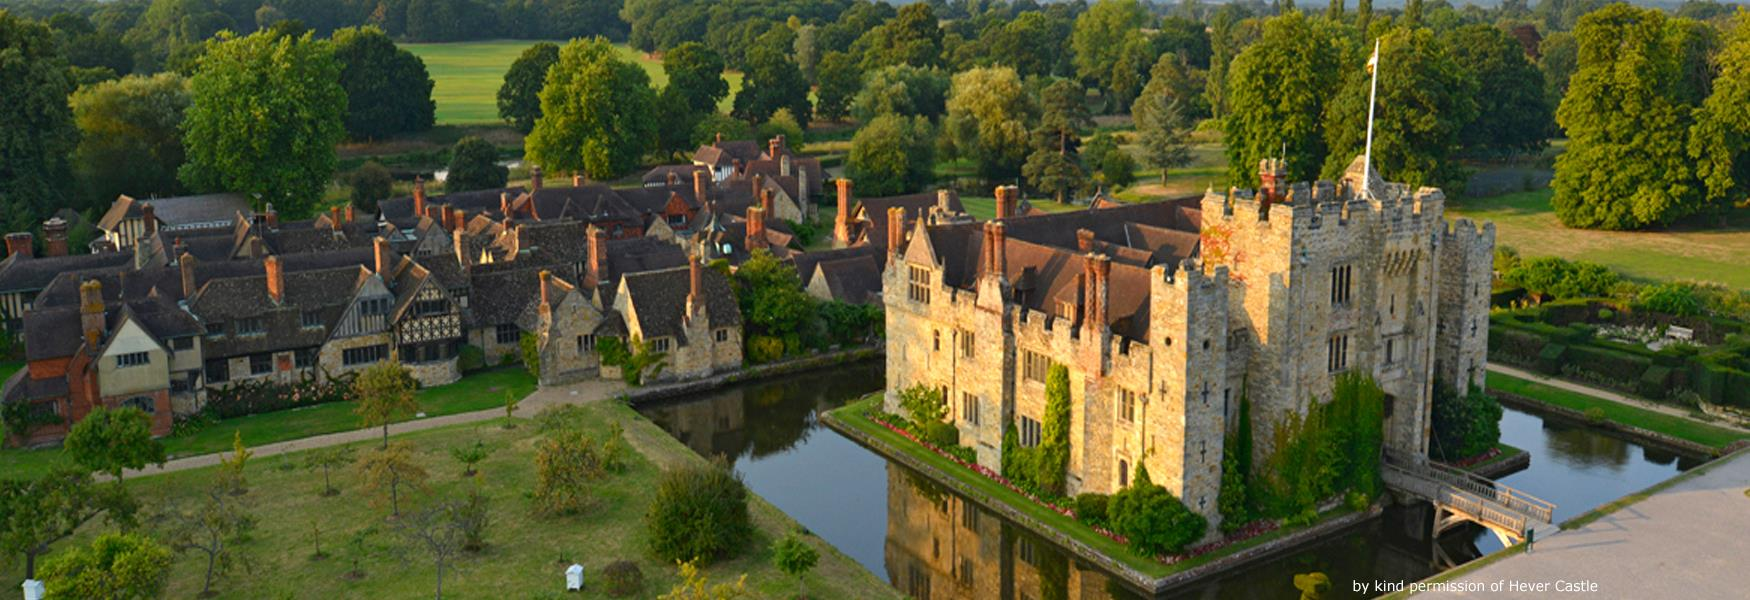 Hever Castle Less than 1 hour from Maidstone